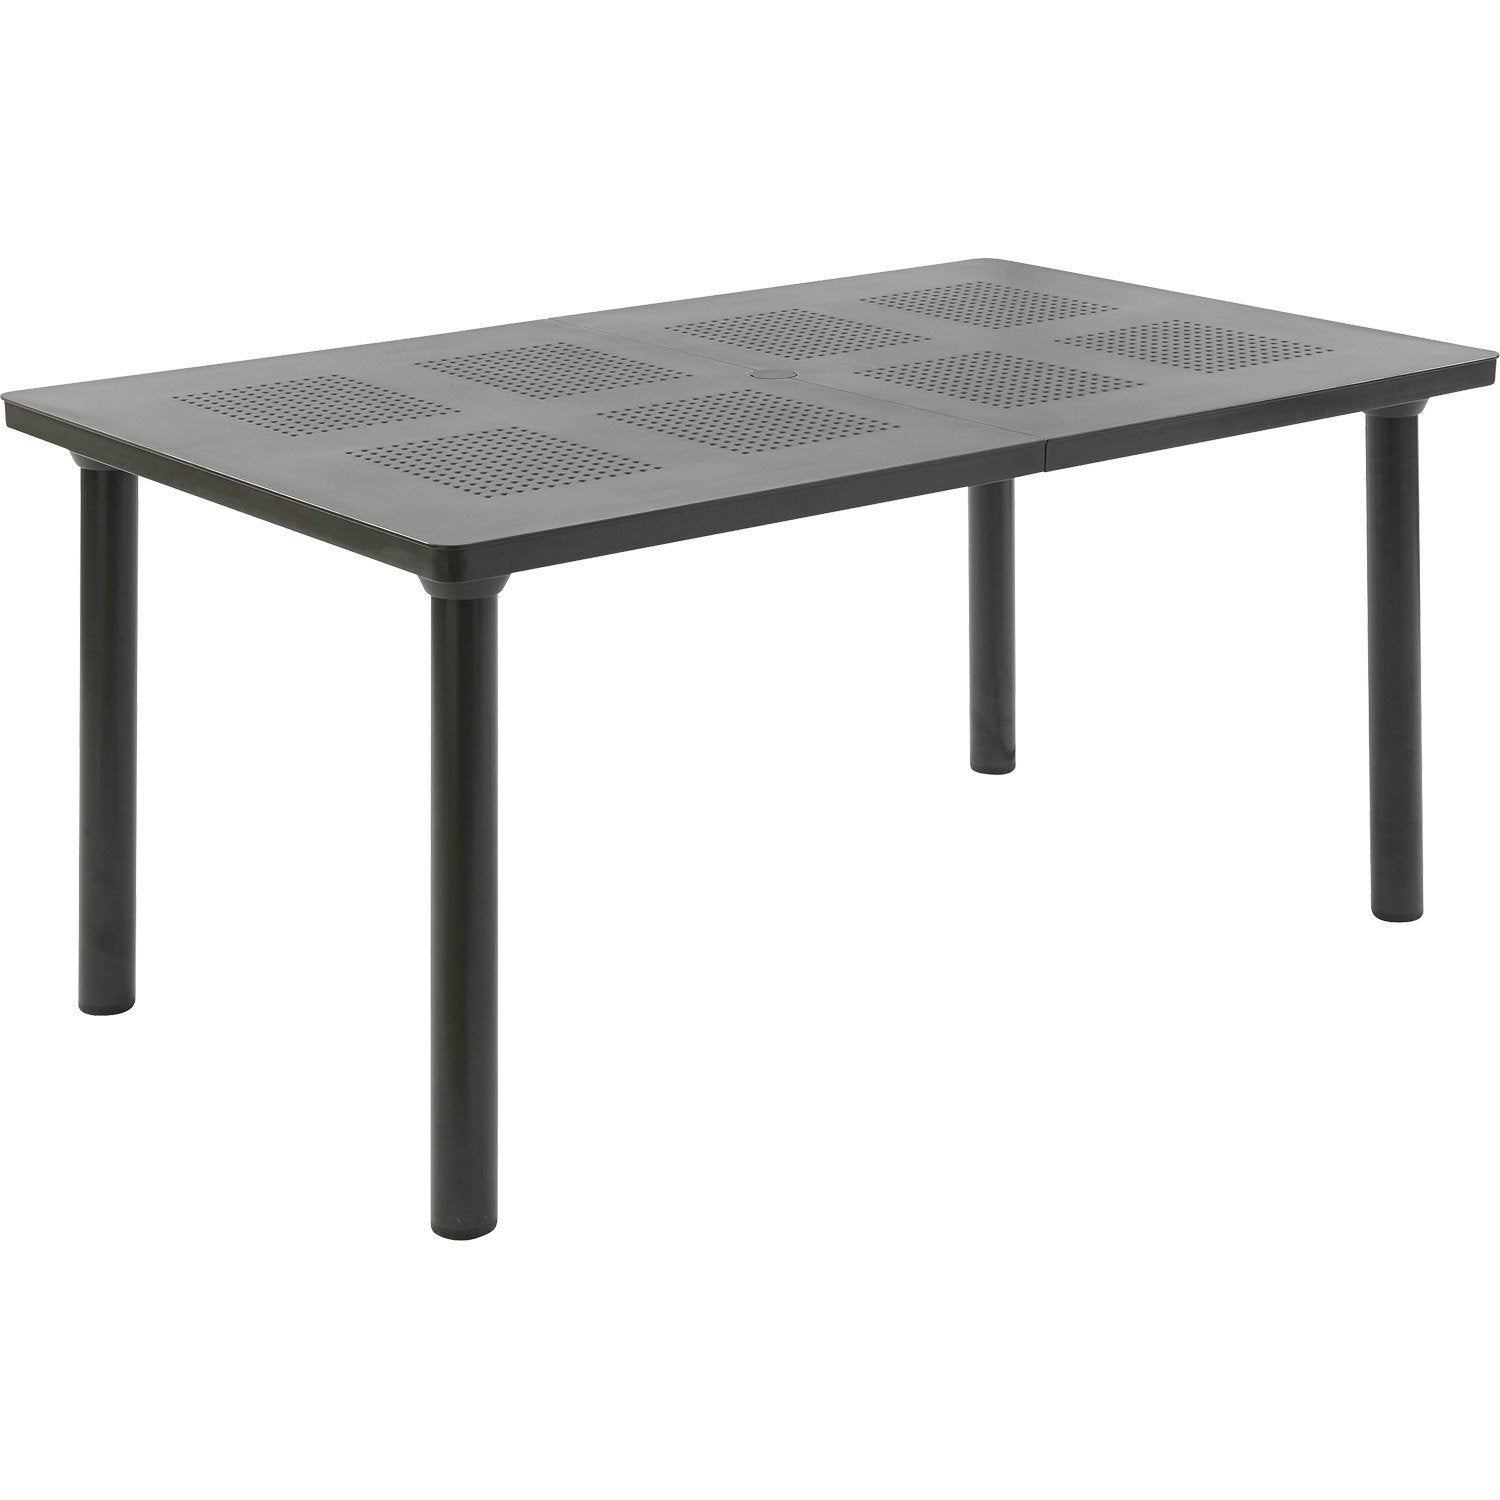 Table de jardin en r sine libeccio gris antracithe nardi - Leroy merlin table pliante ...